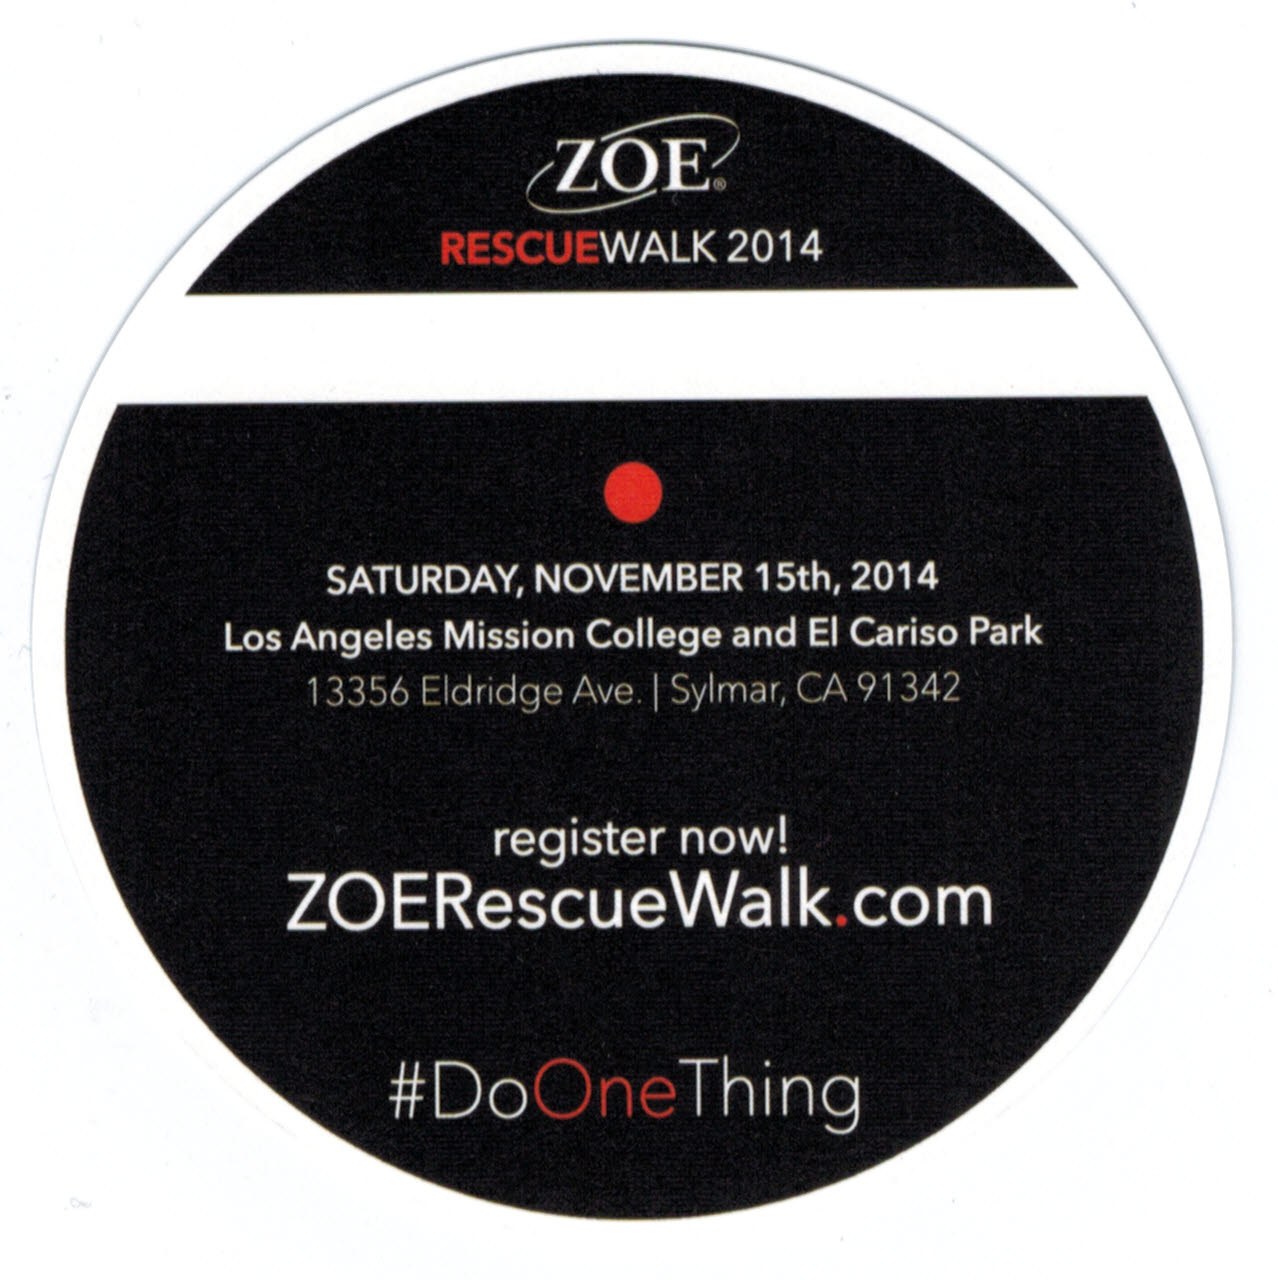 Rescue Walk Circle Flyer Back062014_0000